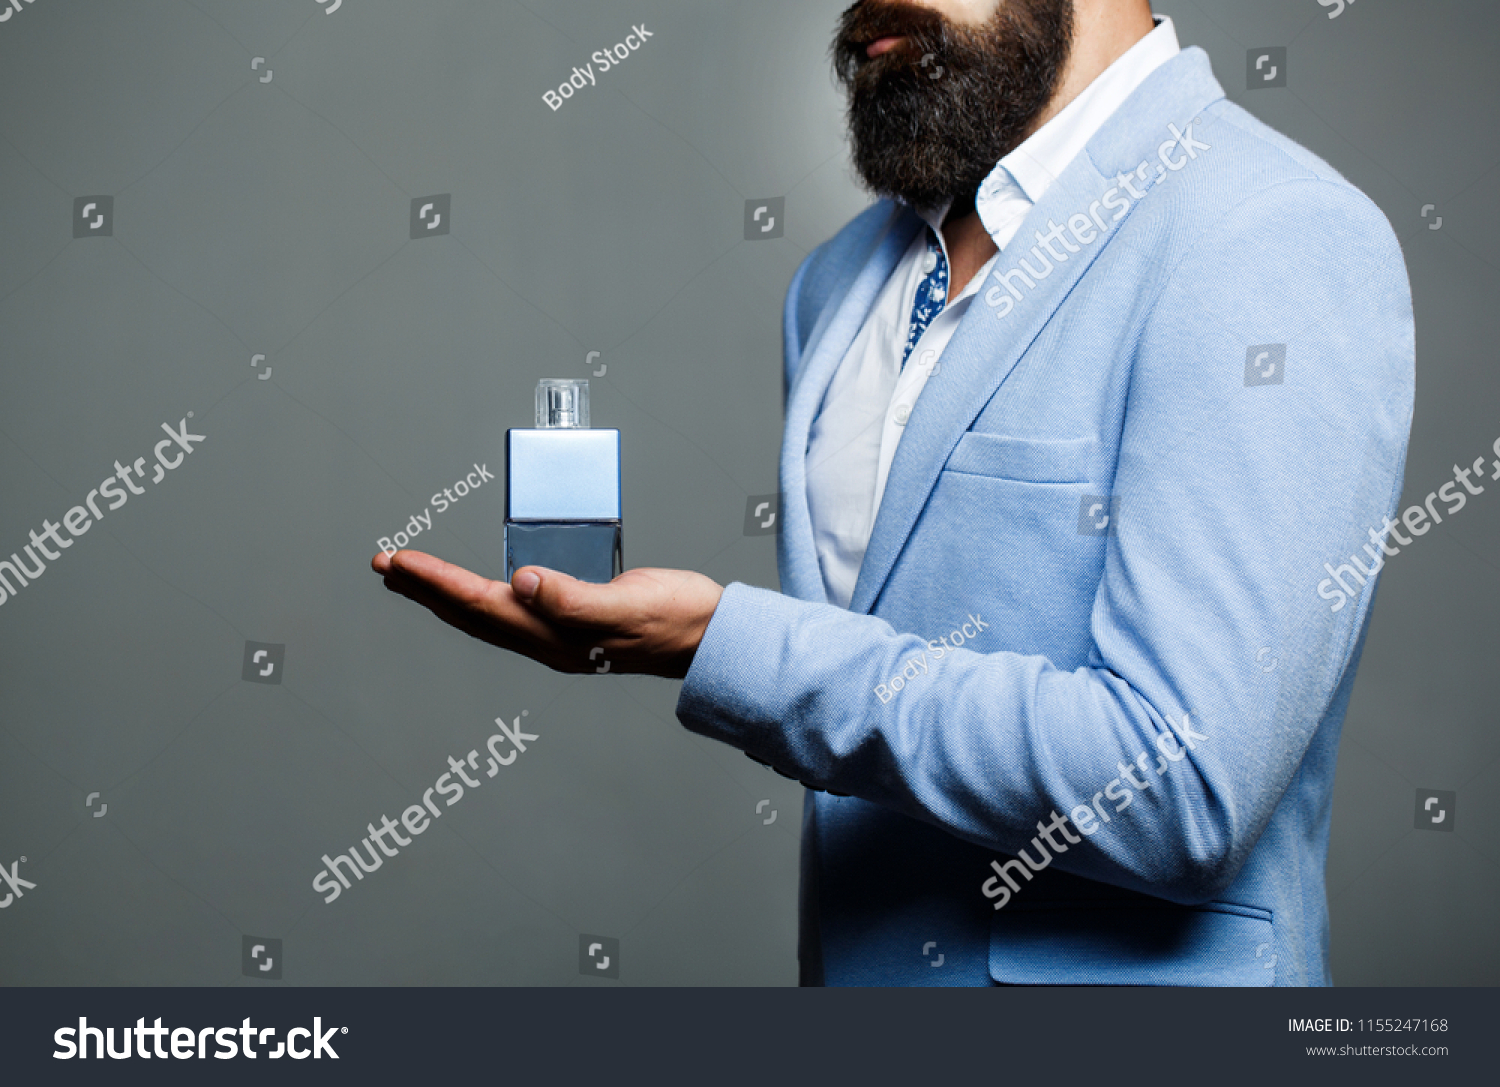 Male holding up bottle of perfume. Man perfume, fragrance. Perfume or cologne bottle and perfumery, cosmetics, scent cologne bottle, male holding cologne. Masculine perfume, bearded man in a suit.